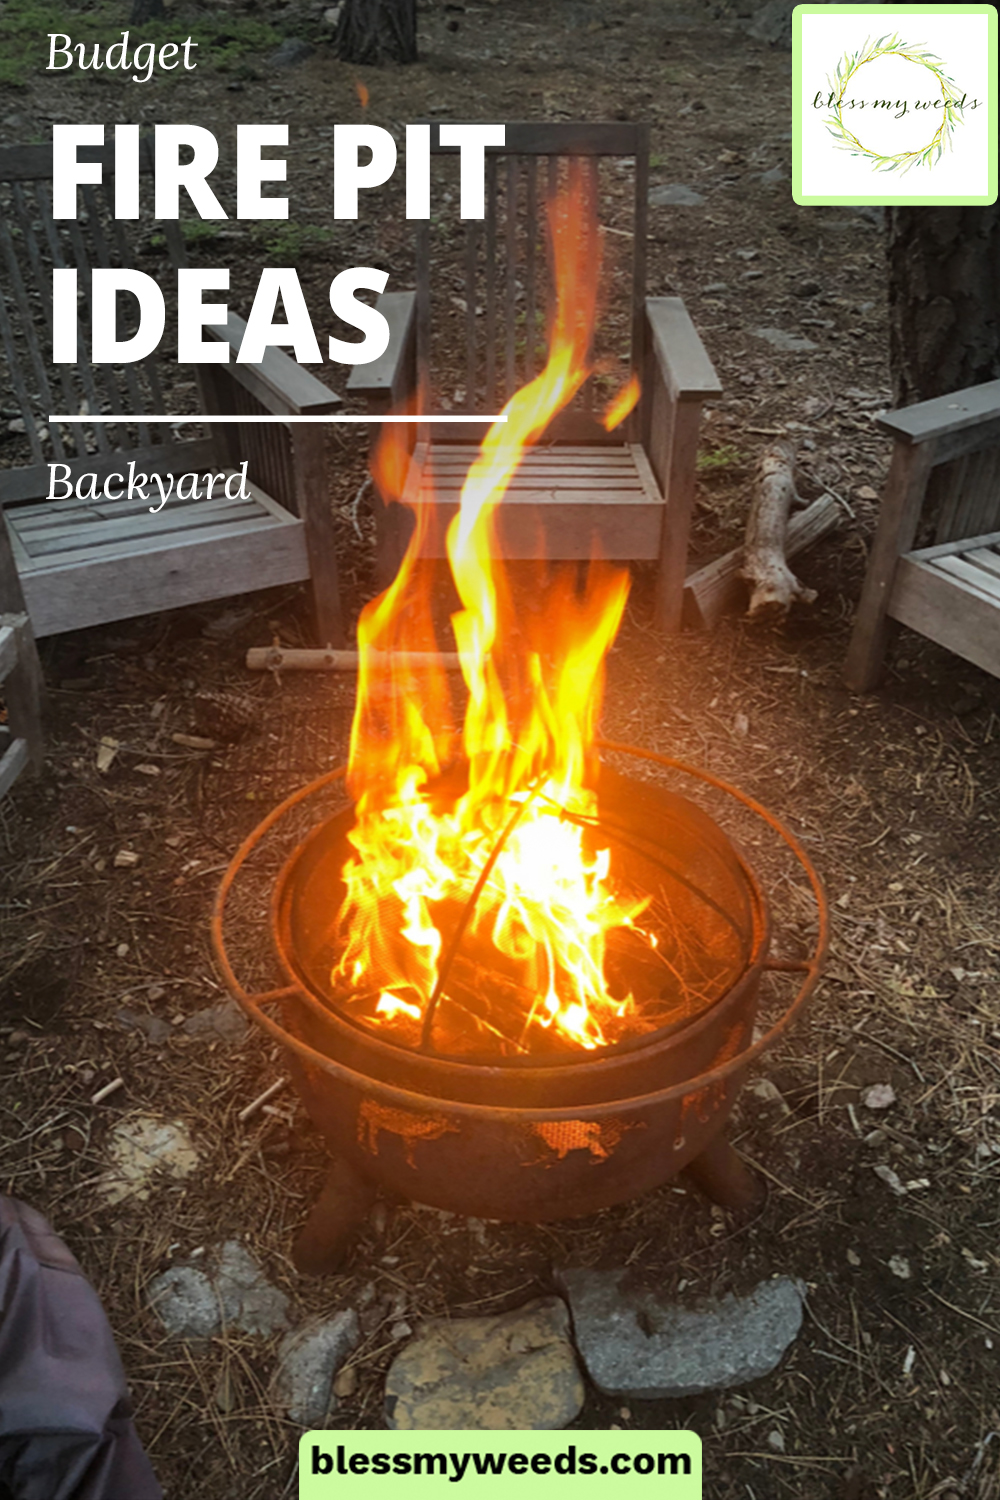 Fire Pit Ideas For The Backyard: On A Budget, Small ...